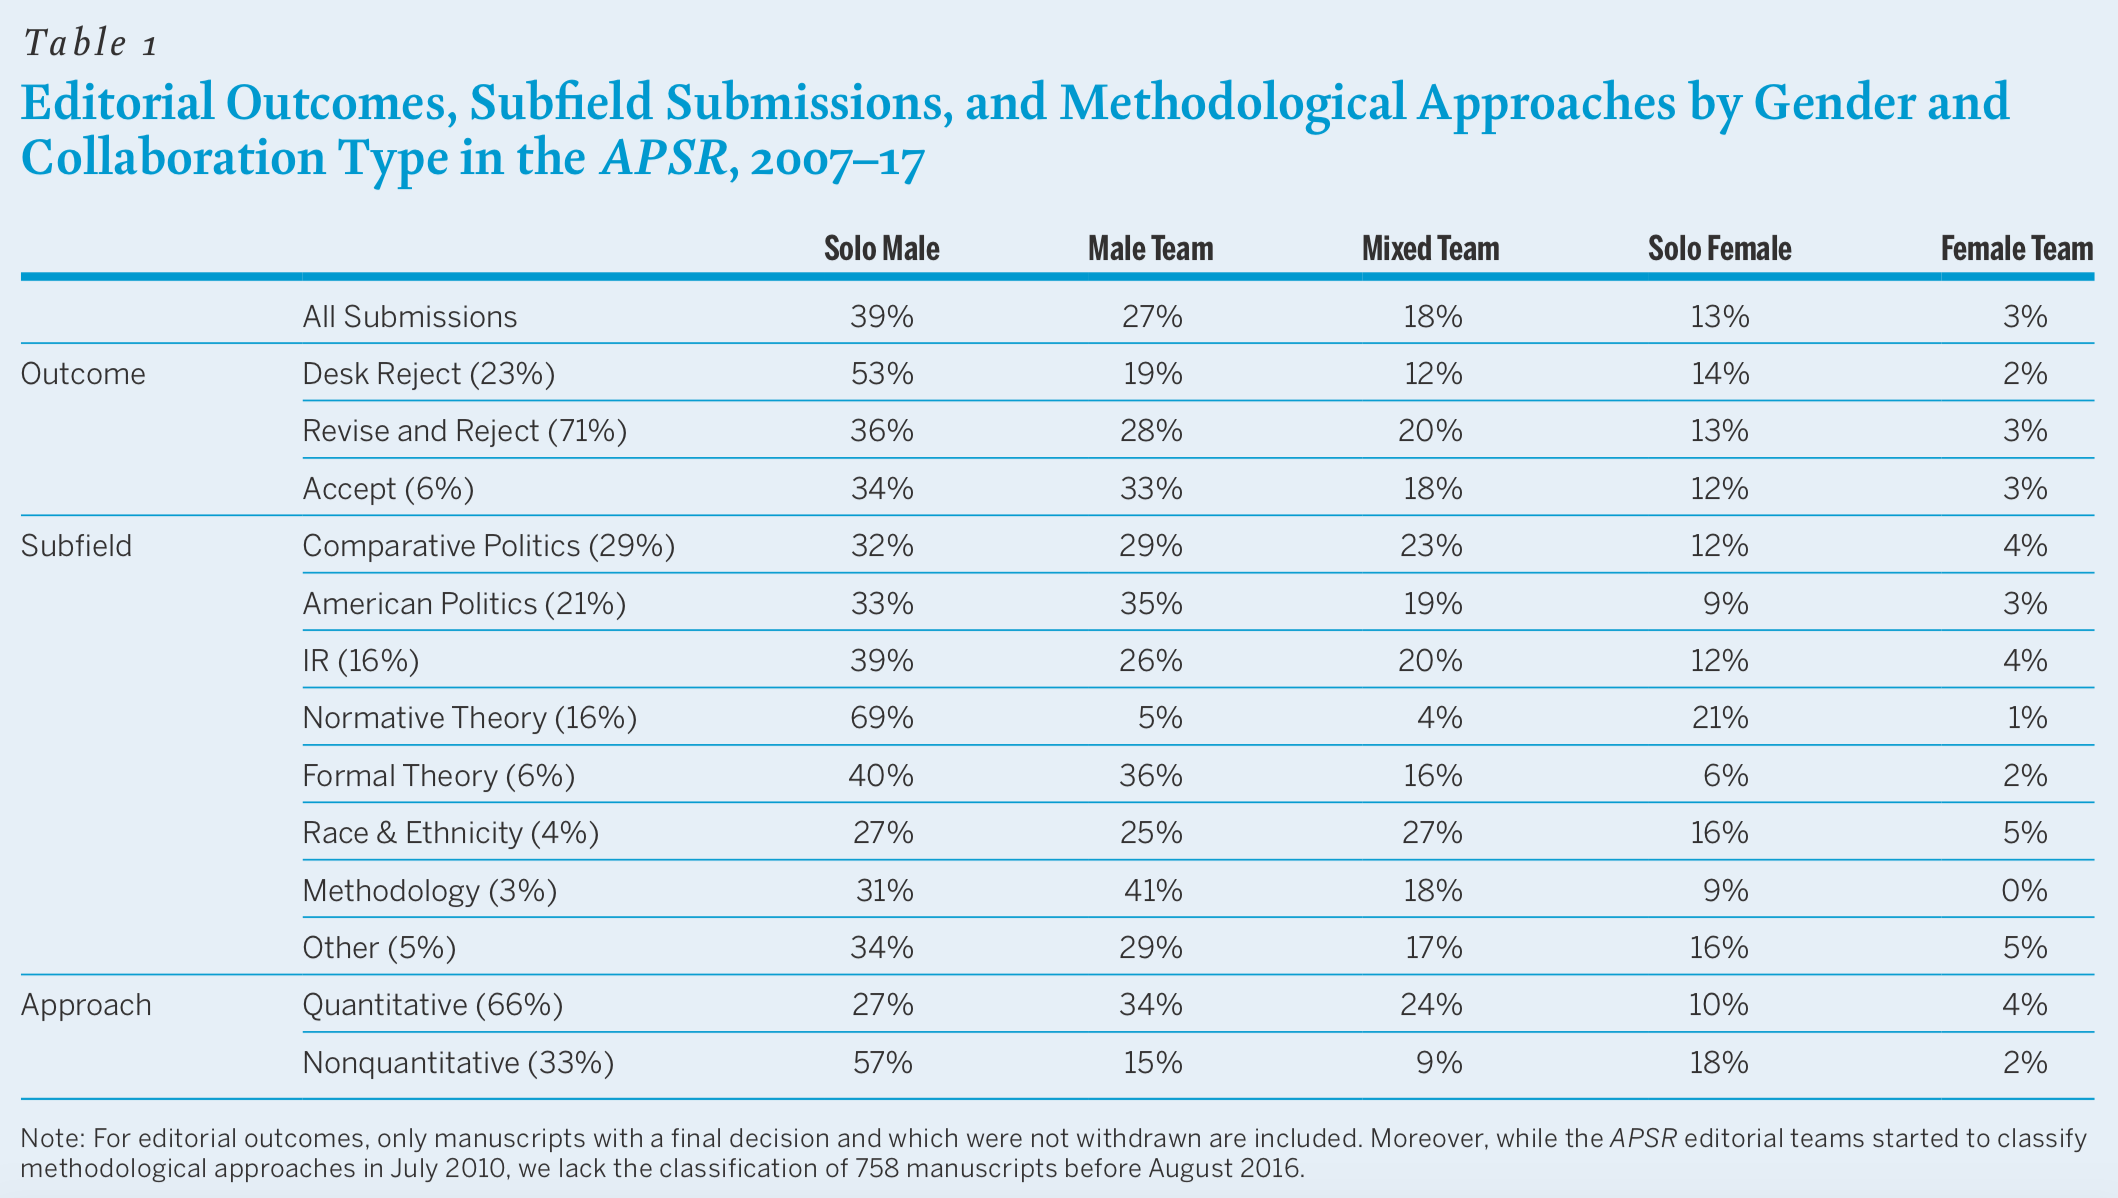 Editorial outcomes, subfield submissions and methodological approaches by gender and collaboration type in the American Political Science Review, from 2007 to 2017